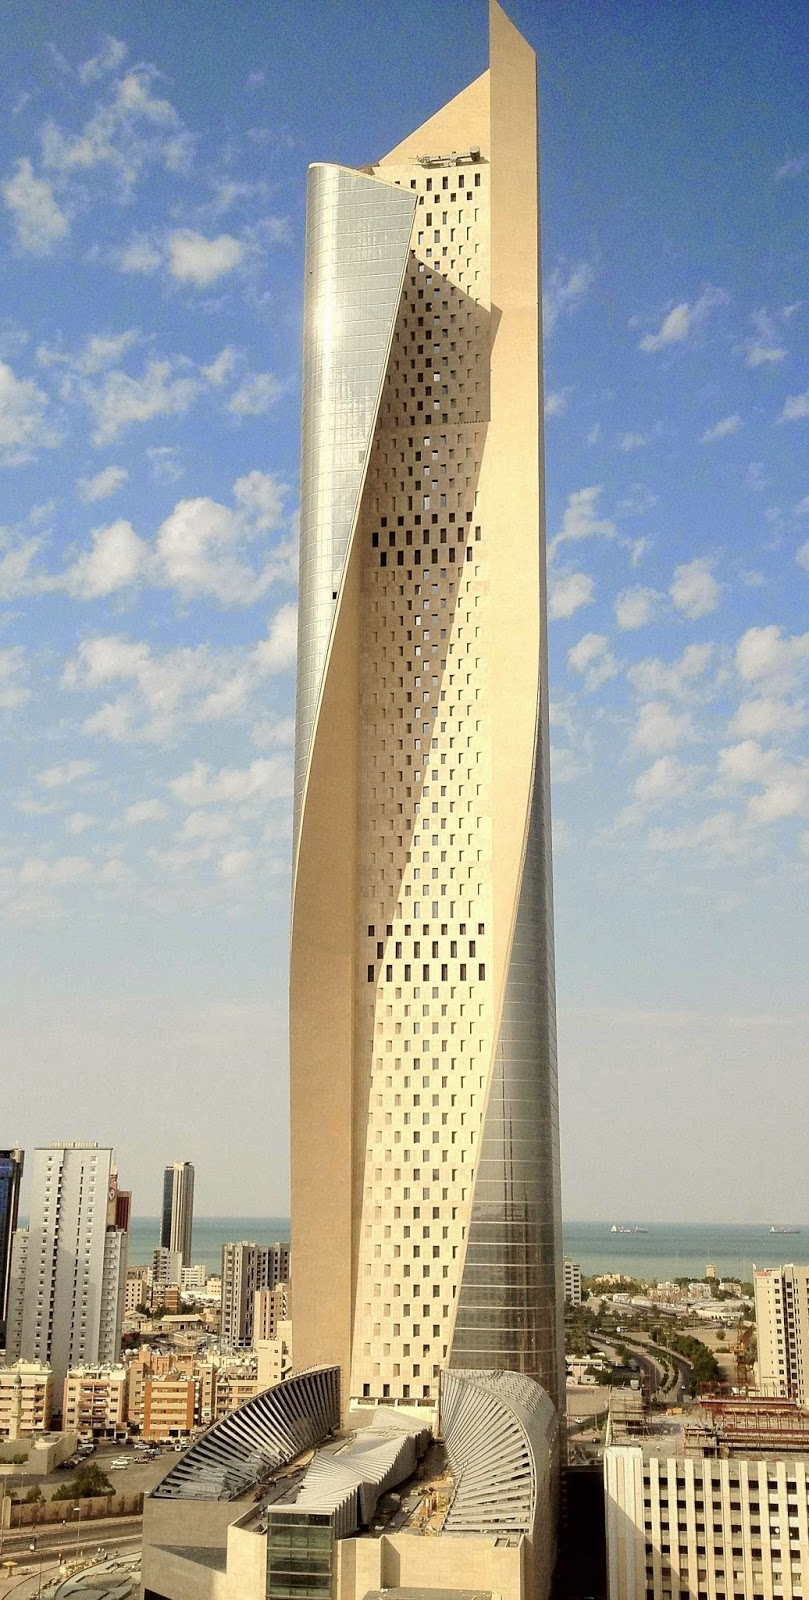 The Al Hamra Tower Kuwait City, Kuwait